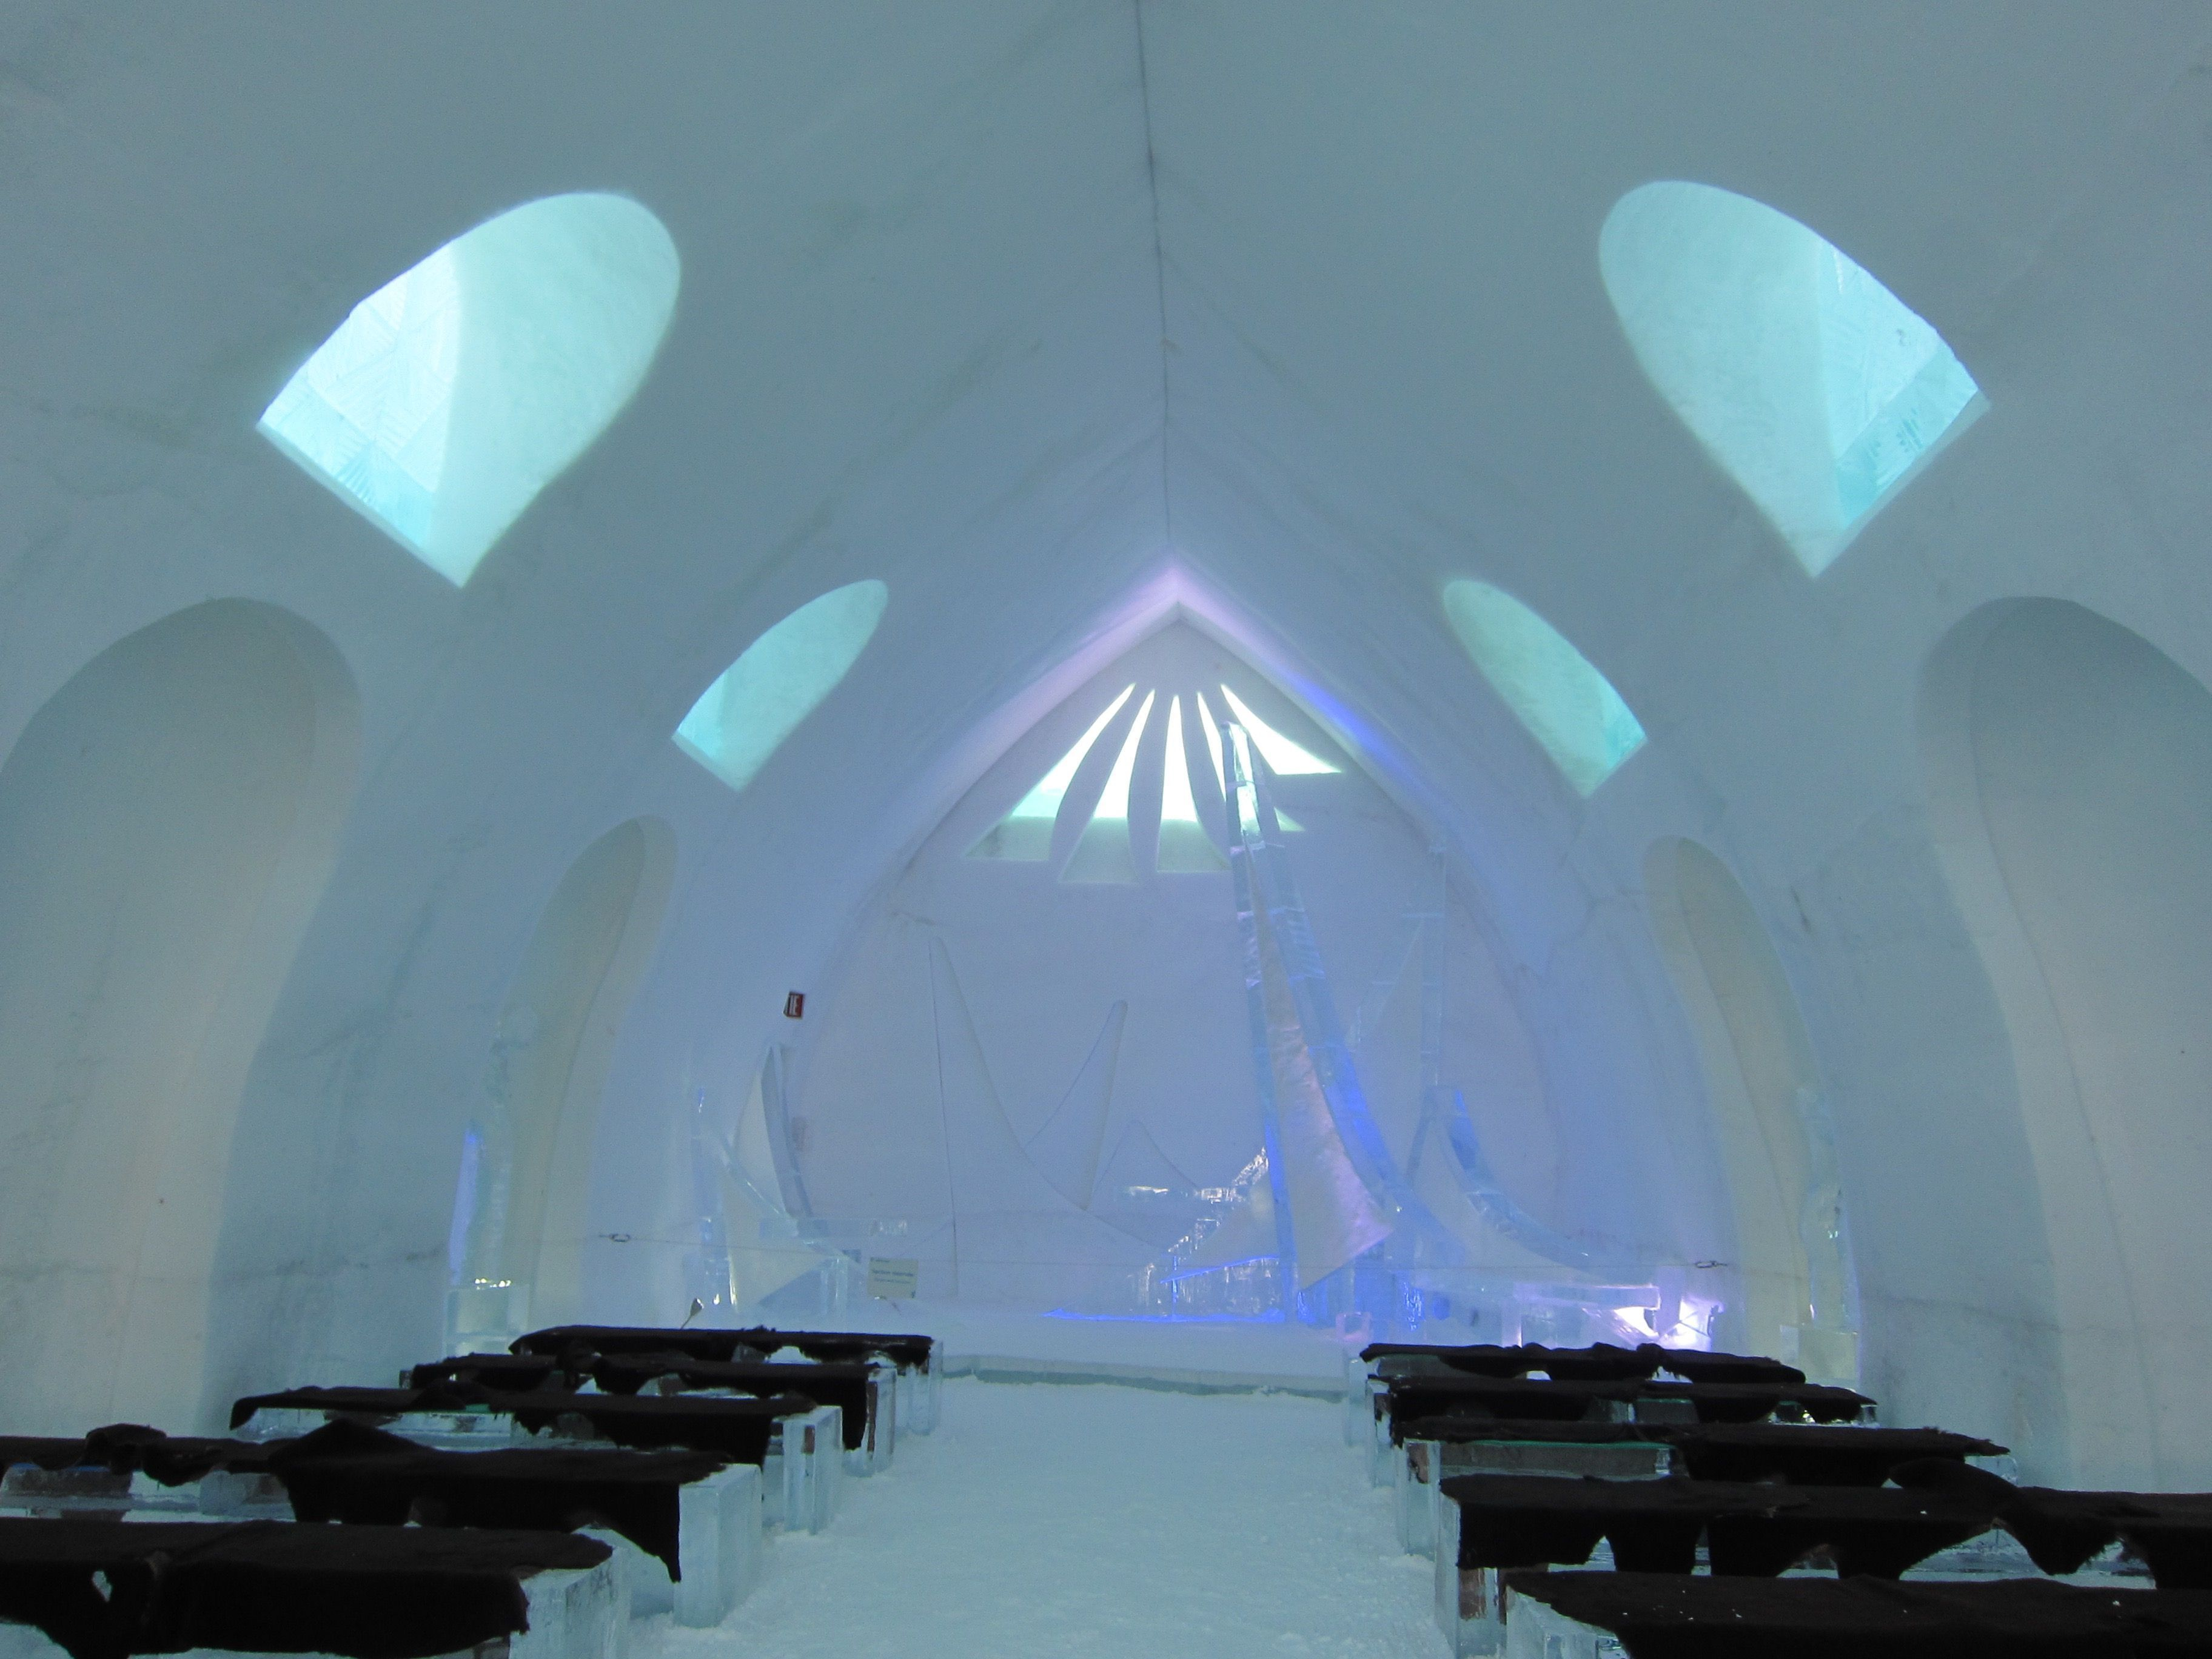 Review of the Ice Hotel, Quebec City, Canada on ice hotels in usa, montreal quebec canada, travel quebec canada, plains of abraham quebec canada, christmas in quebec canada, map of quebec canada, ice hotel quebec winter carnival, northern lights quebec canada, winter quebec canada, ice village canada, fishing quebec canada, tourist attractions in winnipeg canada, province of quebec canada, luxury hotels in quebec canada, quebec quebec canada, banff springs hotel alberta canada, ice hotel in quebec, quebec city canada, gaspe peninsula quebec canada, ice hotel quebec 2014,